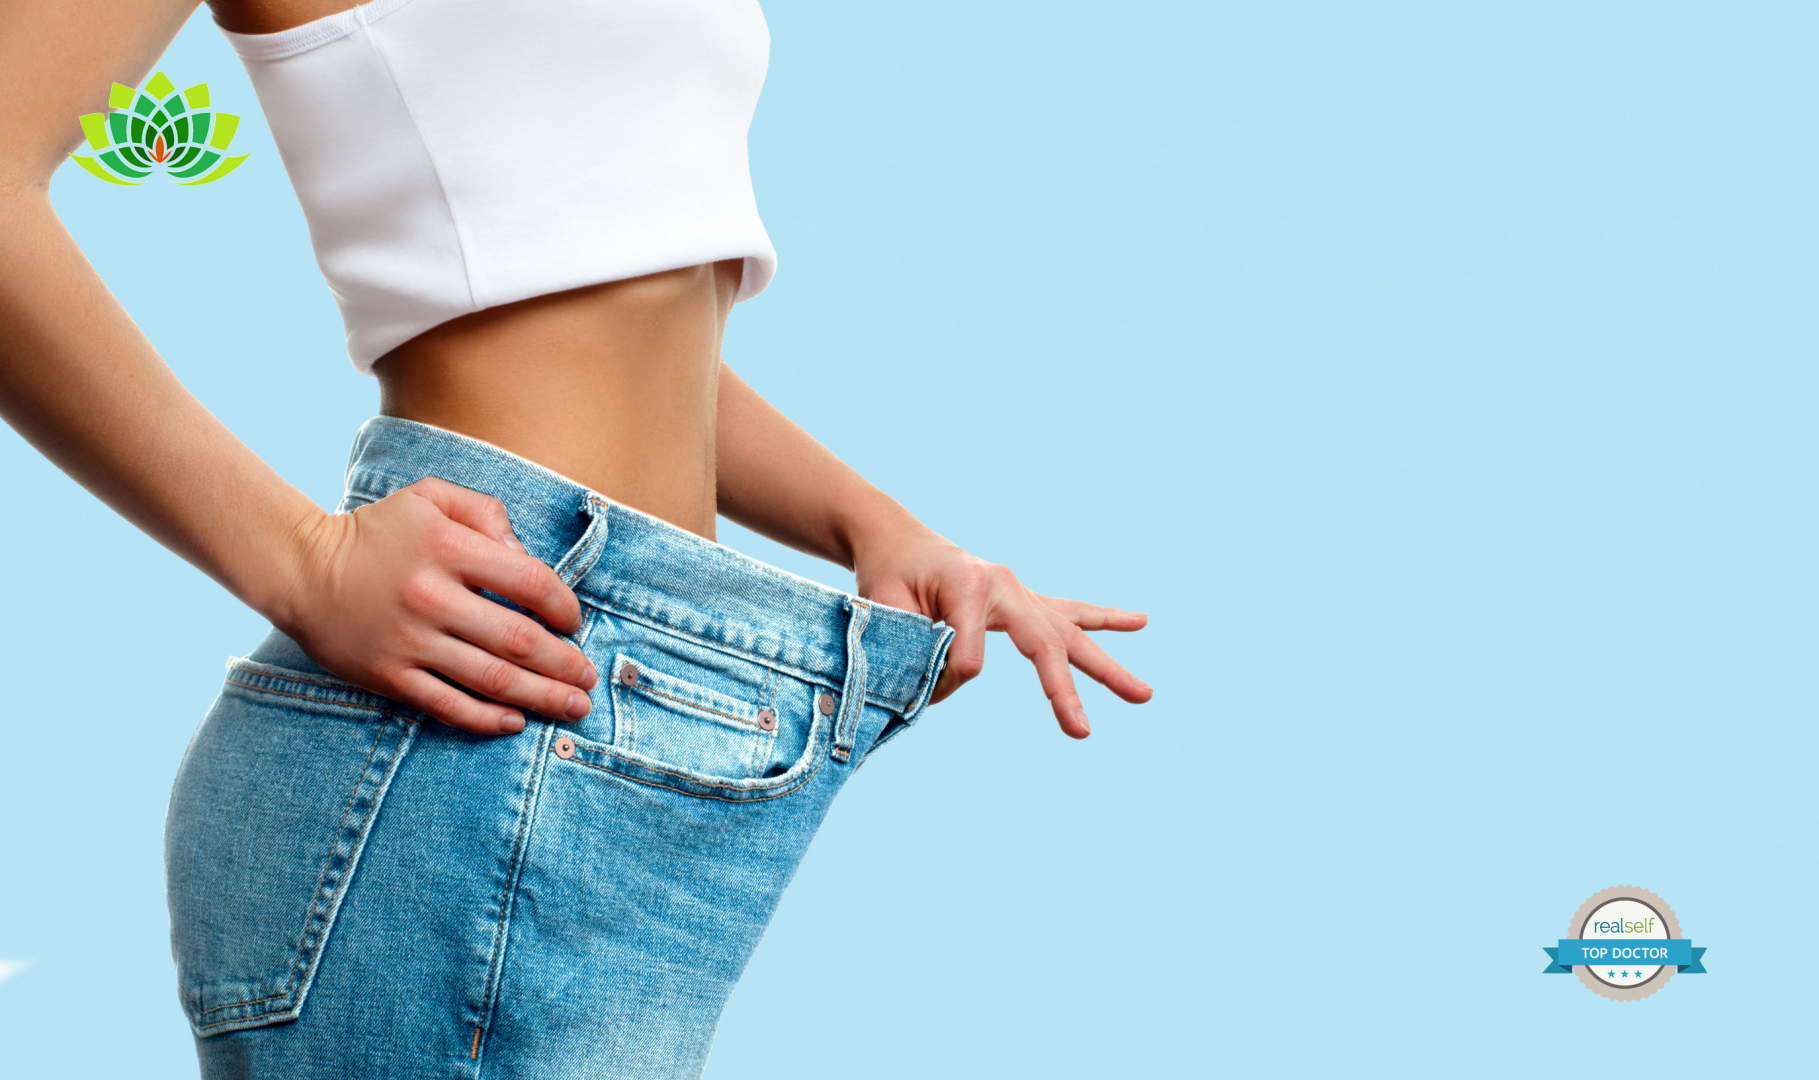 Coolsculpting vs Liposuction: The Comparison